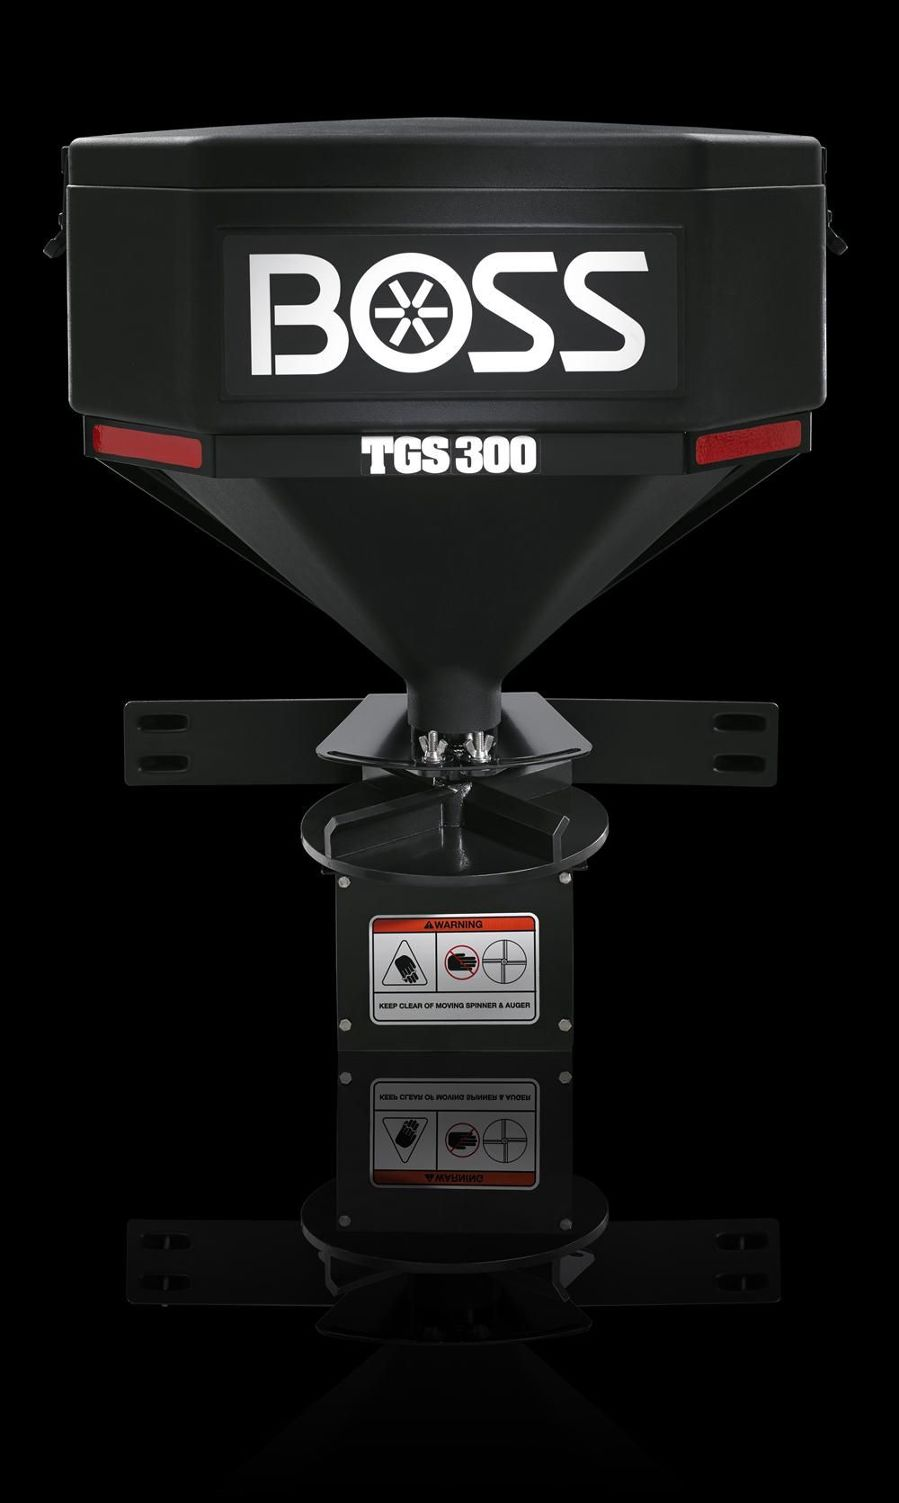 The TGS 300 is powered by a 12-volt electric high-torque motor for consistent performance, reliability and durability.